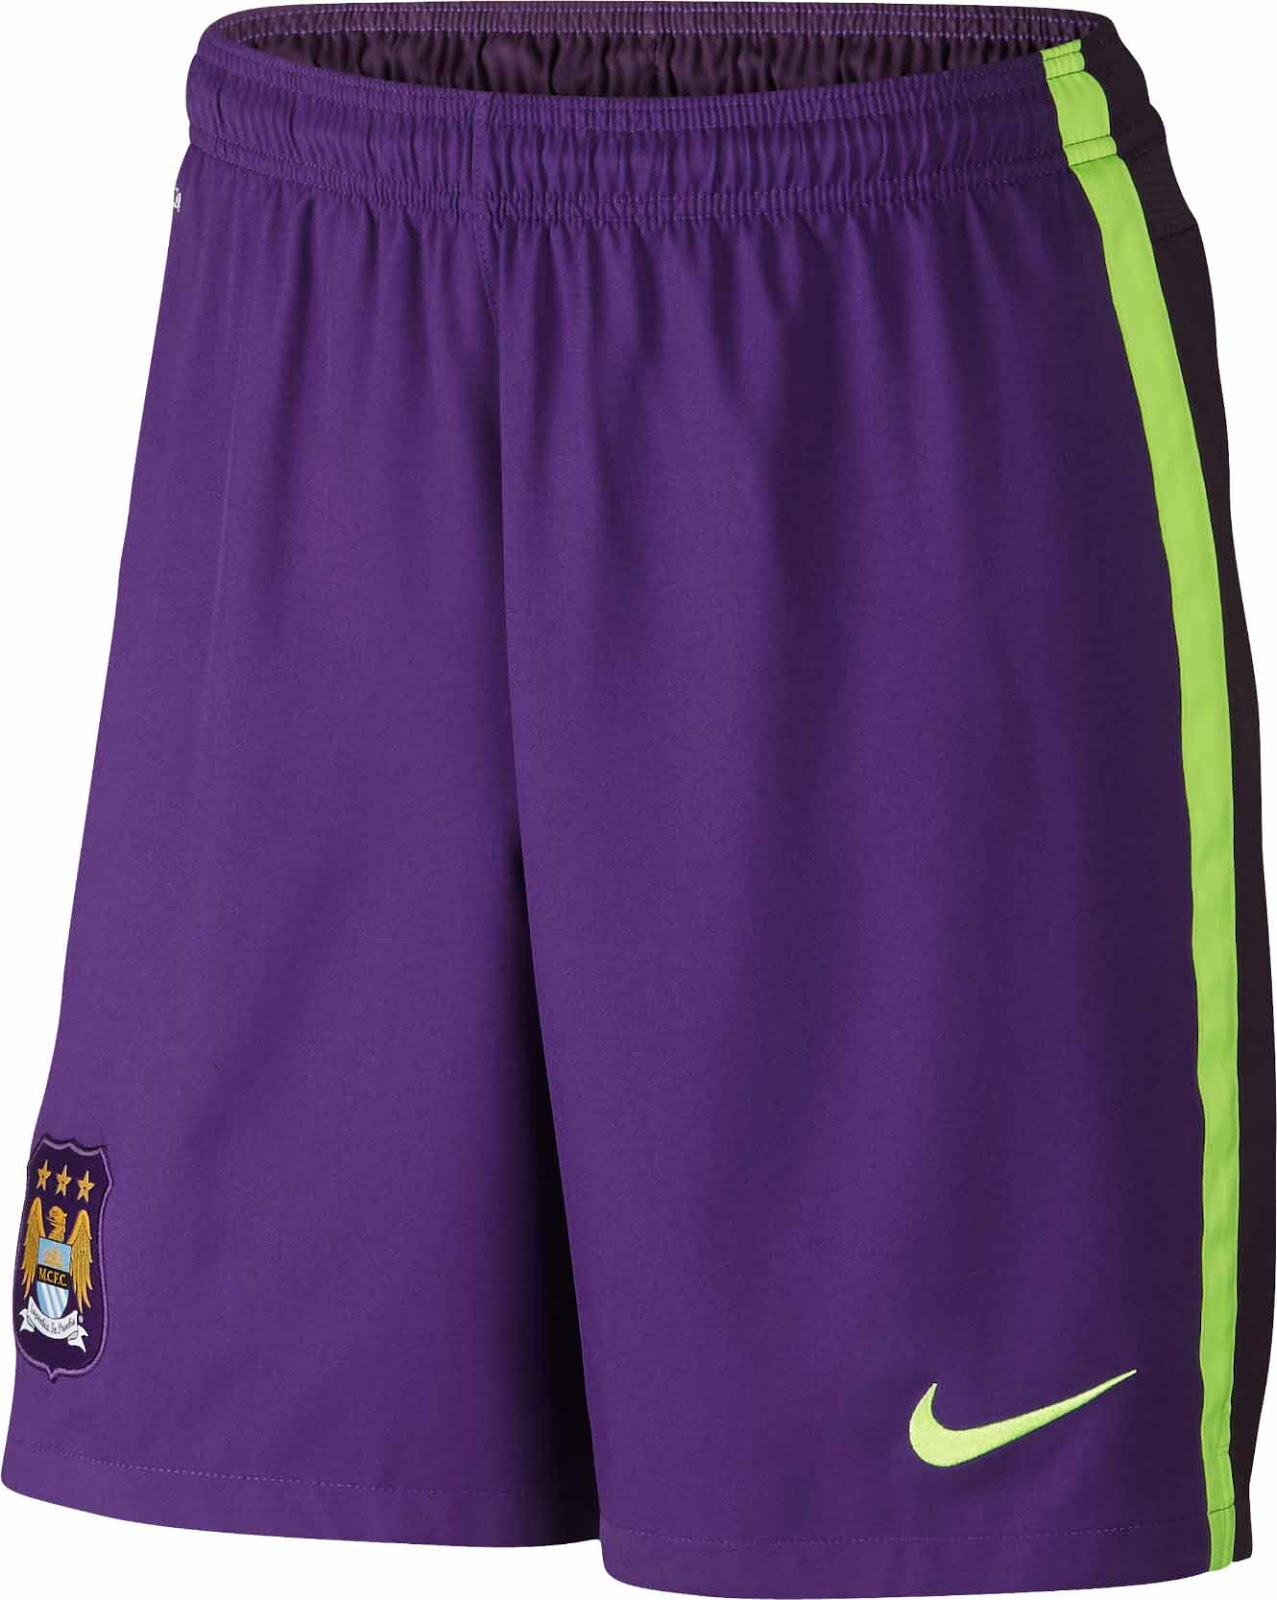 cheap for discount 65909 587ee Manchester City 2014-2015 Local, Visita y alterno .